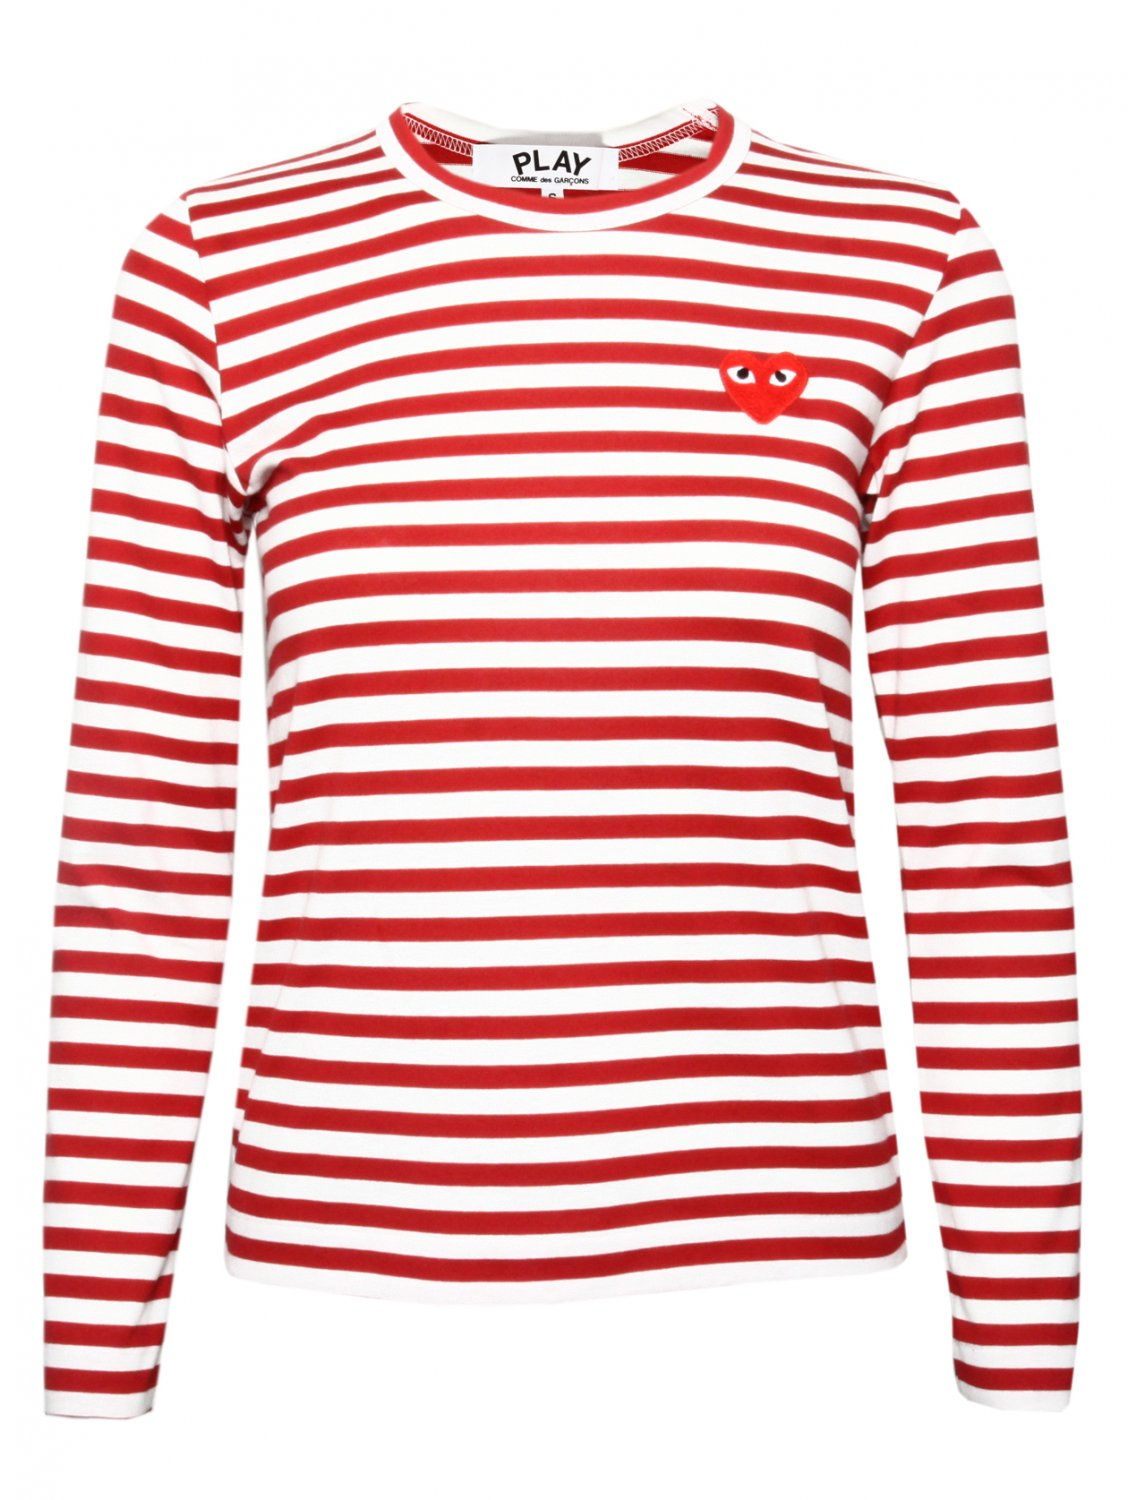 comme des gar ons play womens red heart stripe t shirt red. Black Bedroom Furniture Sets. Home Design Ideas